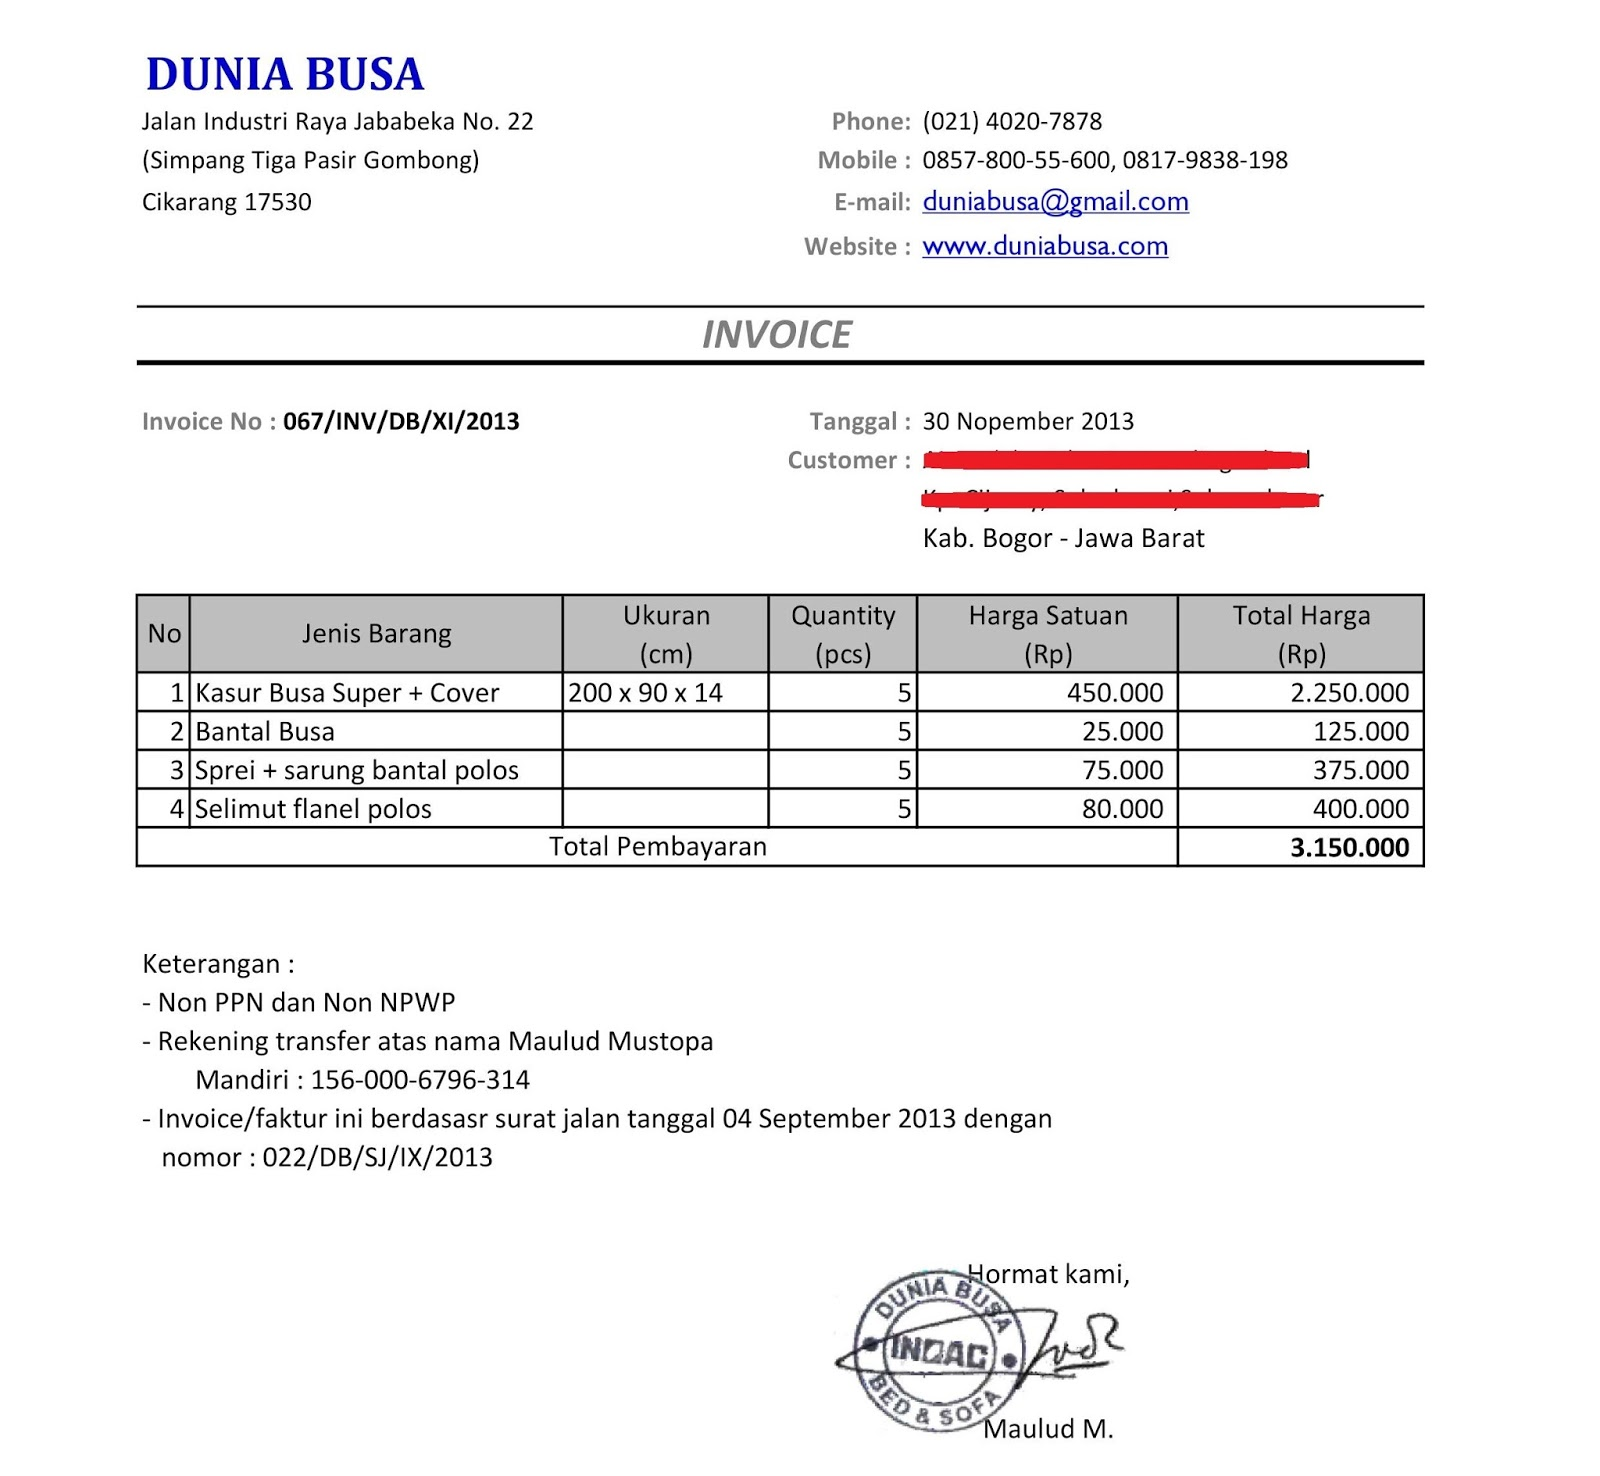 Usdgus  Splendid Free Invoice Online  Create Invoice Online  Invoice Template  With Foxy Contoh Format Invoice Atau Surat Tagihan  Brankas Arsip  Free Invoice Online With Endearing Hyundai Invoice Pricing Also Invoice For You In Addition Joomla Invoice And Courier Invoice Template As Well As Invoice In Word Format Additionally Invoice And Accounting Software From Sklepco With Usdgus  Foxy Free Invoice Online  Create Invoice Online  Invoice Template  With Endearing Contoh Format Invoice Atau Surat Tagihan  Brankas Arsip  Free Invoice Online And Splendid Hyundai Invoice Pricing Also Invoice For You In Addition Joomla Invoice From Sklepco